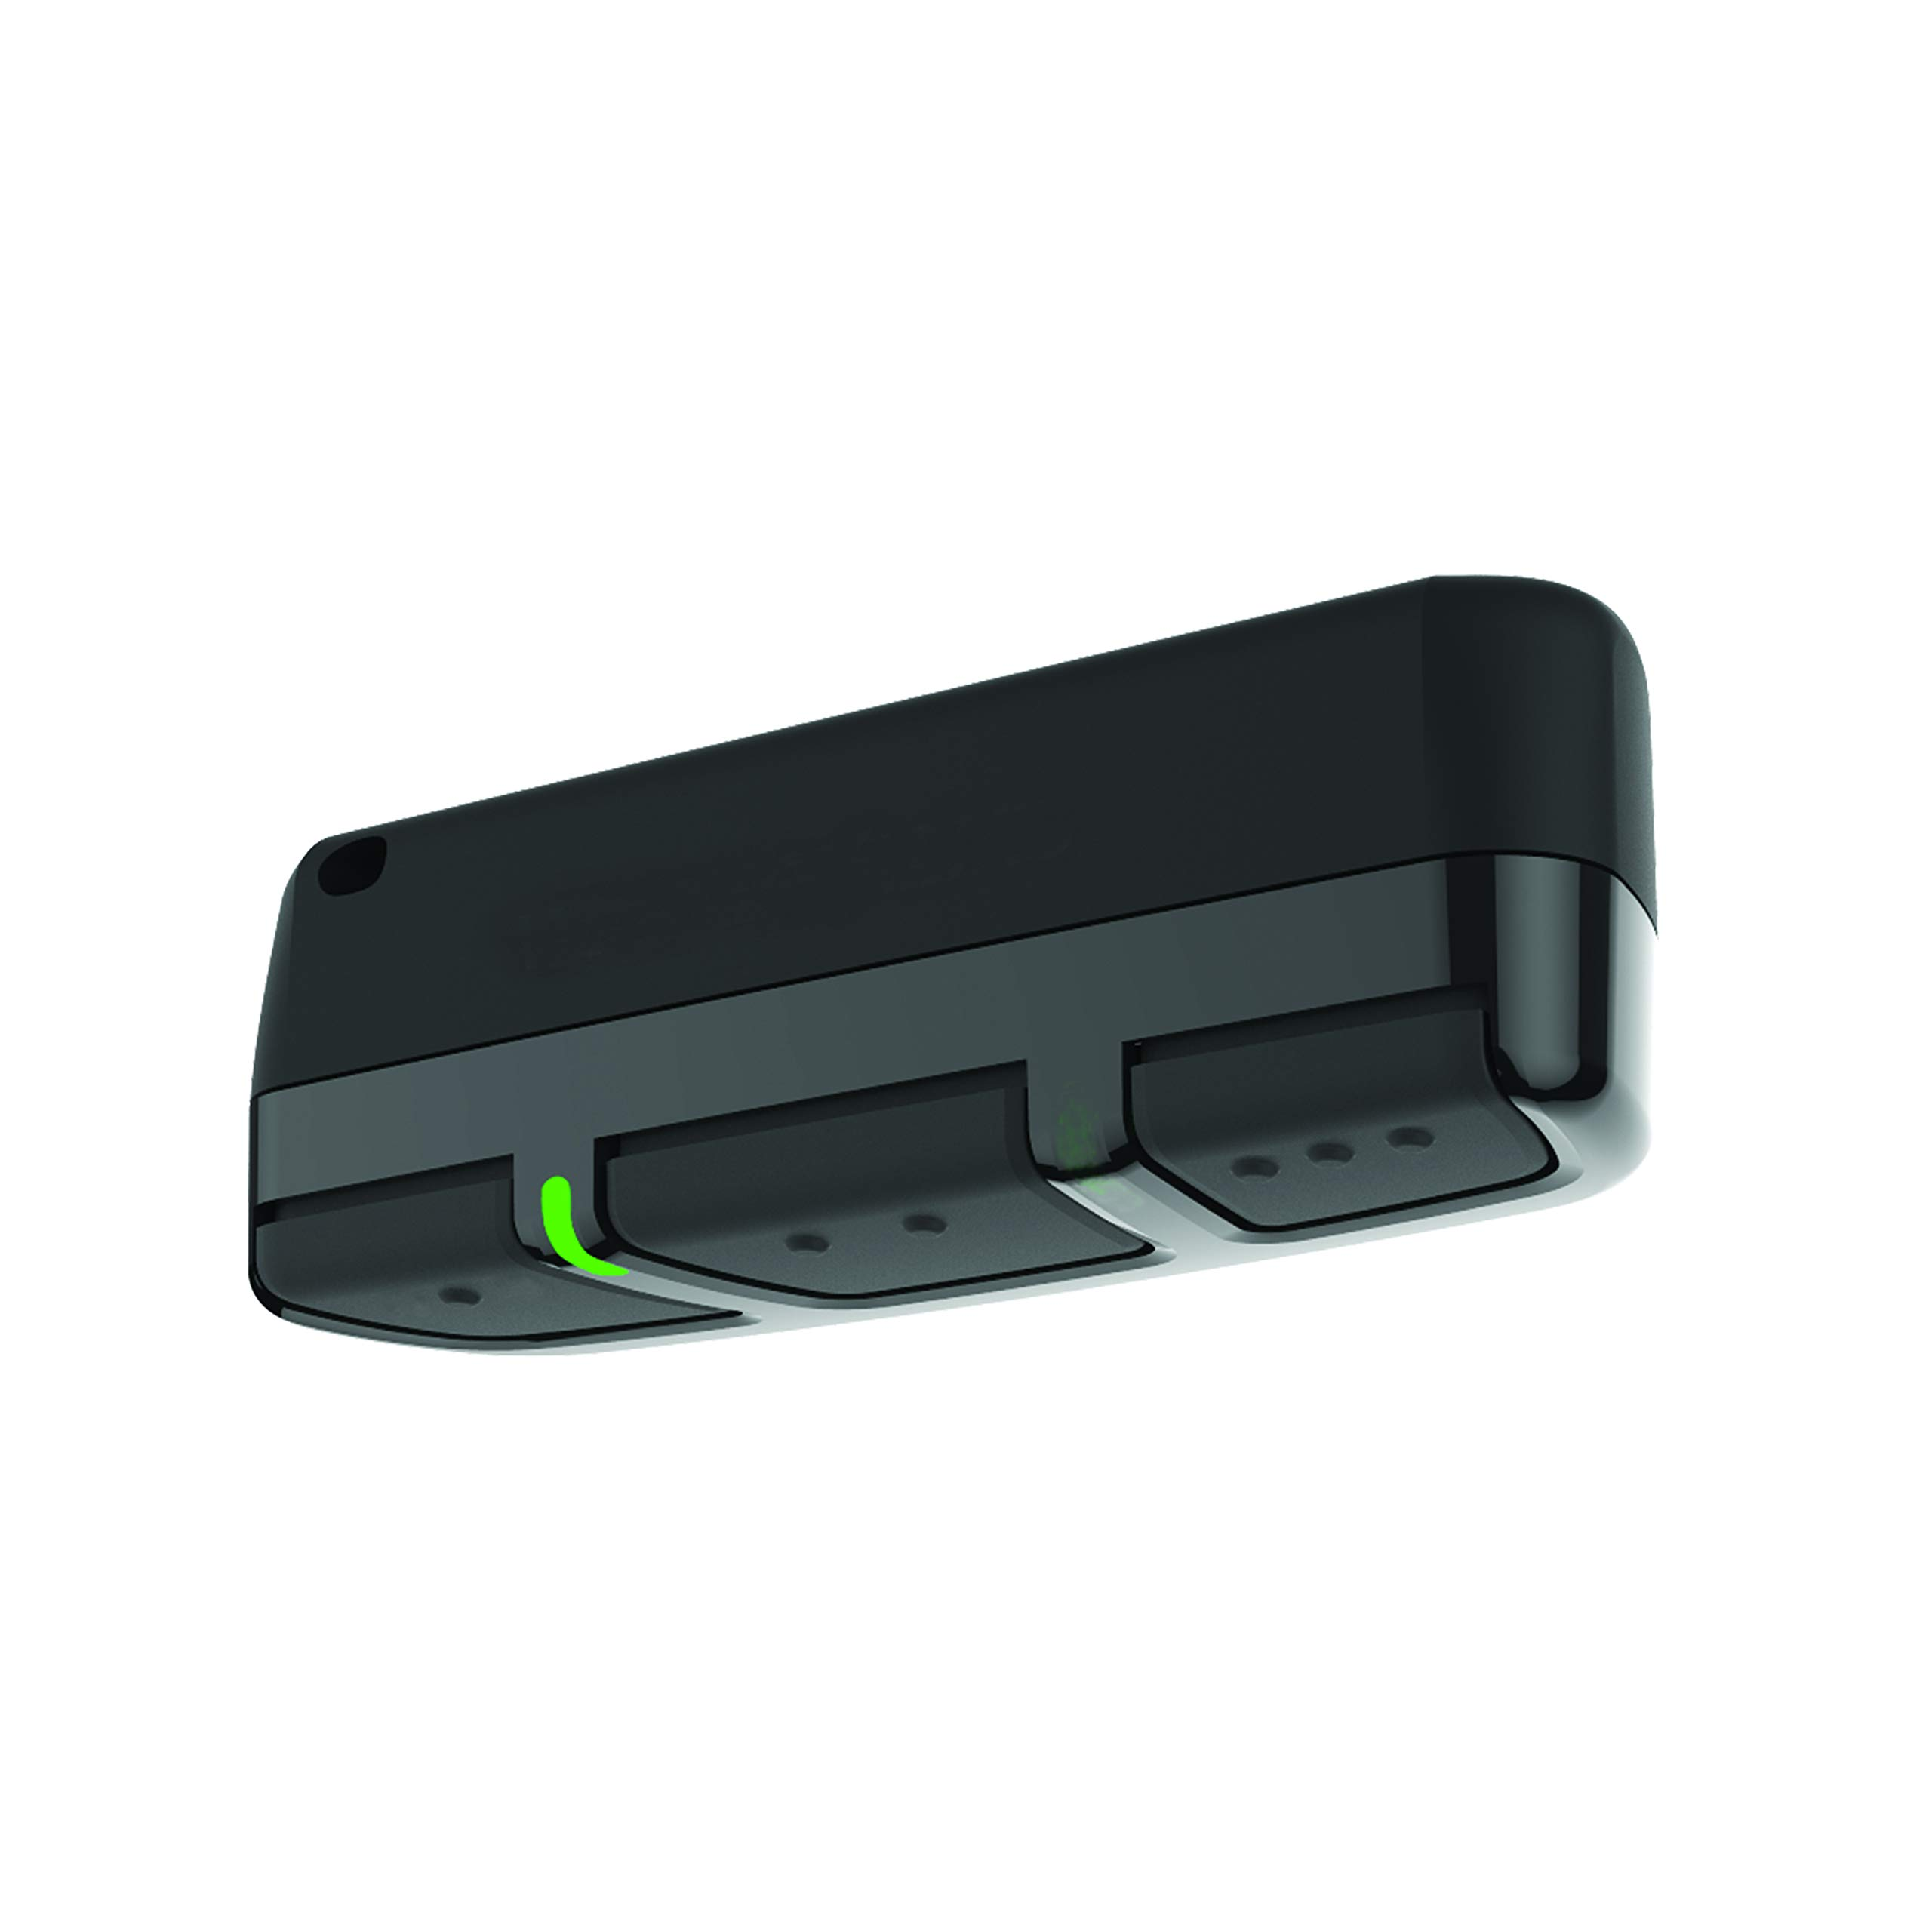 Brandmotion 1110-2520 Frameless Manual Dim Rear View Mirror with Universal Remote Control by Brandmotion (Image #3)